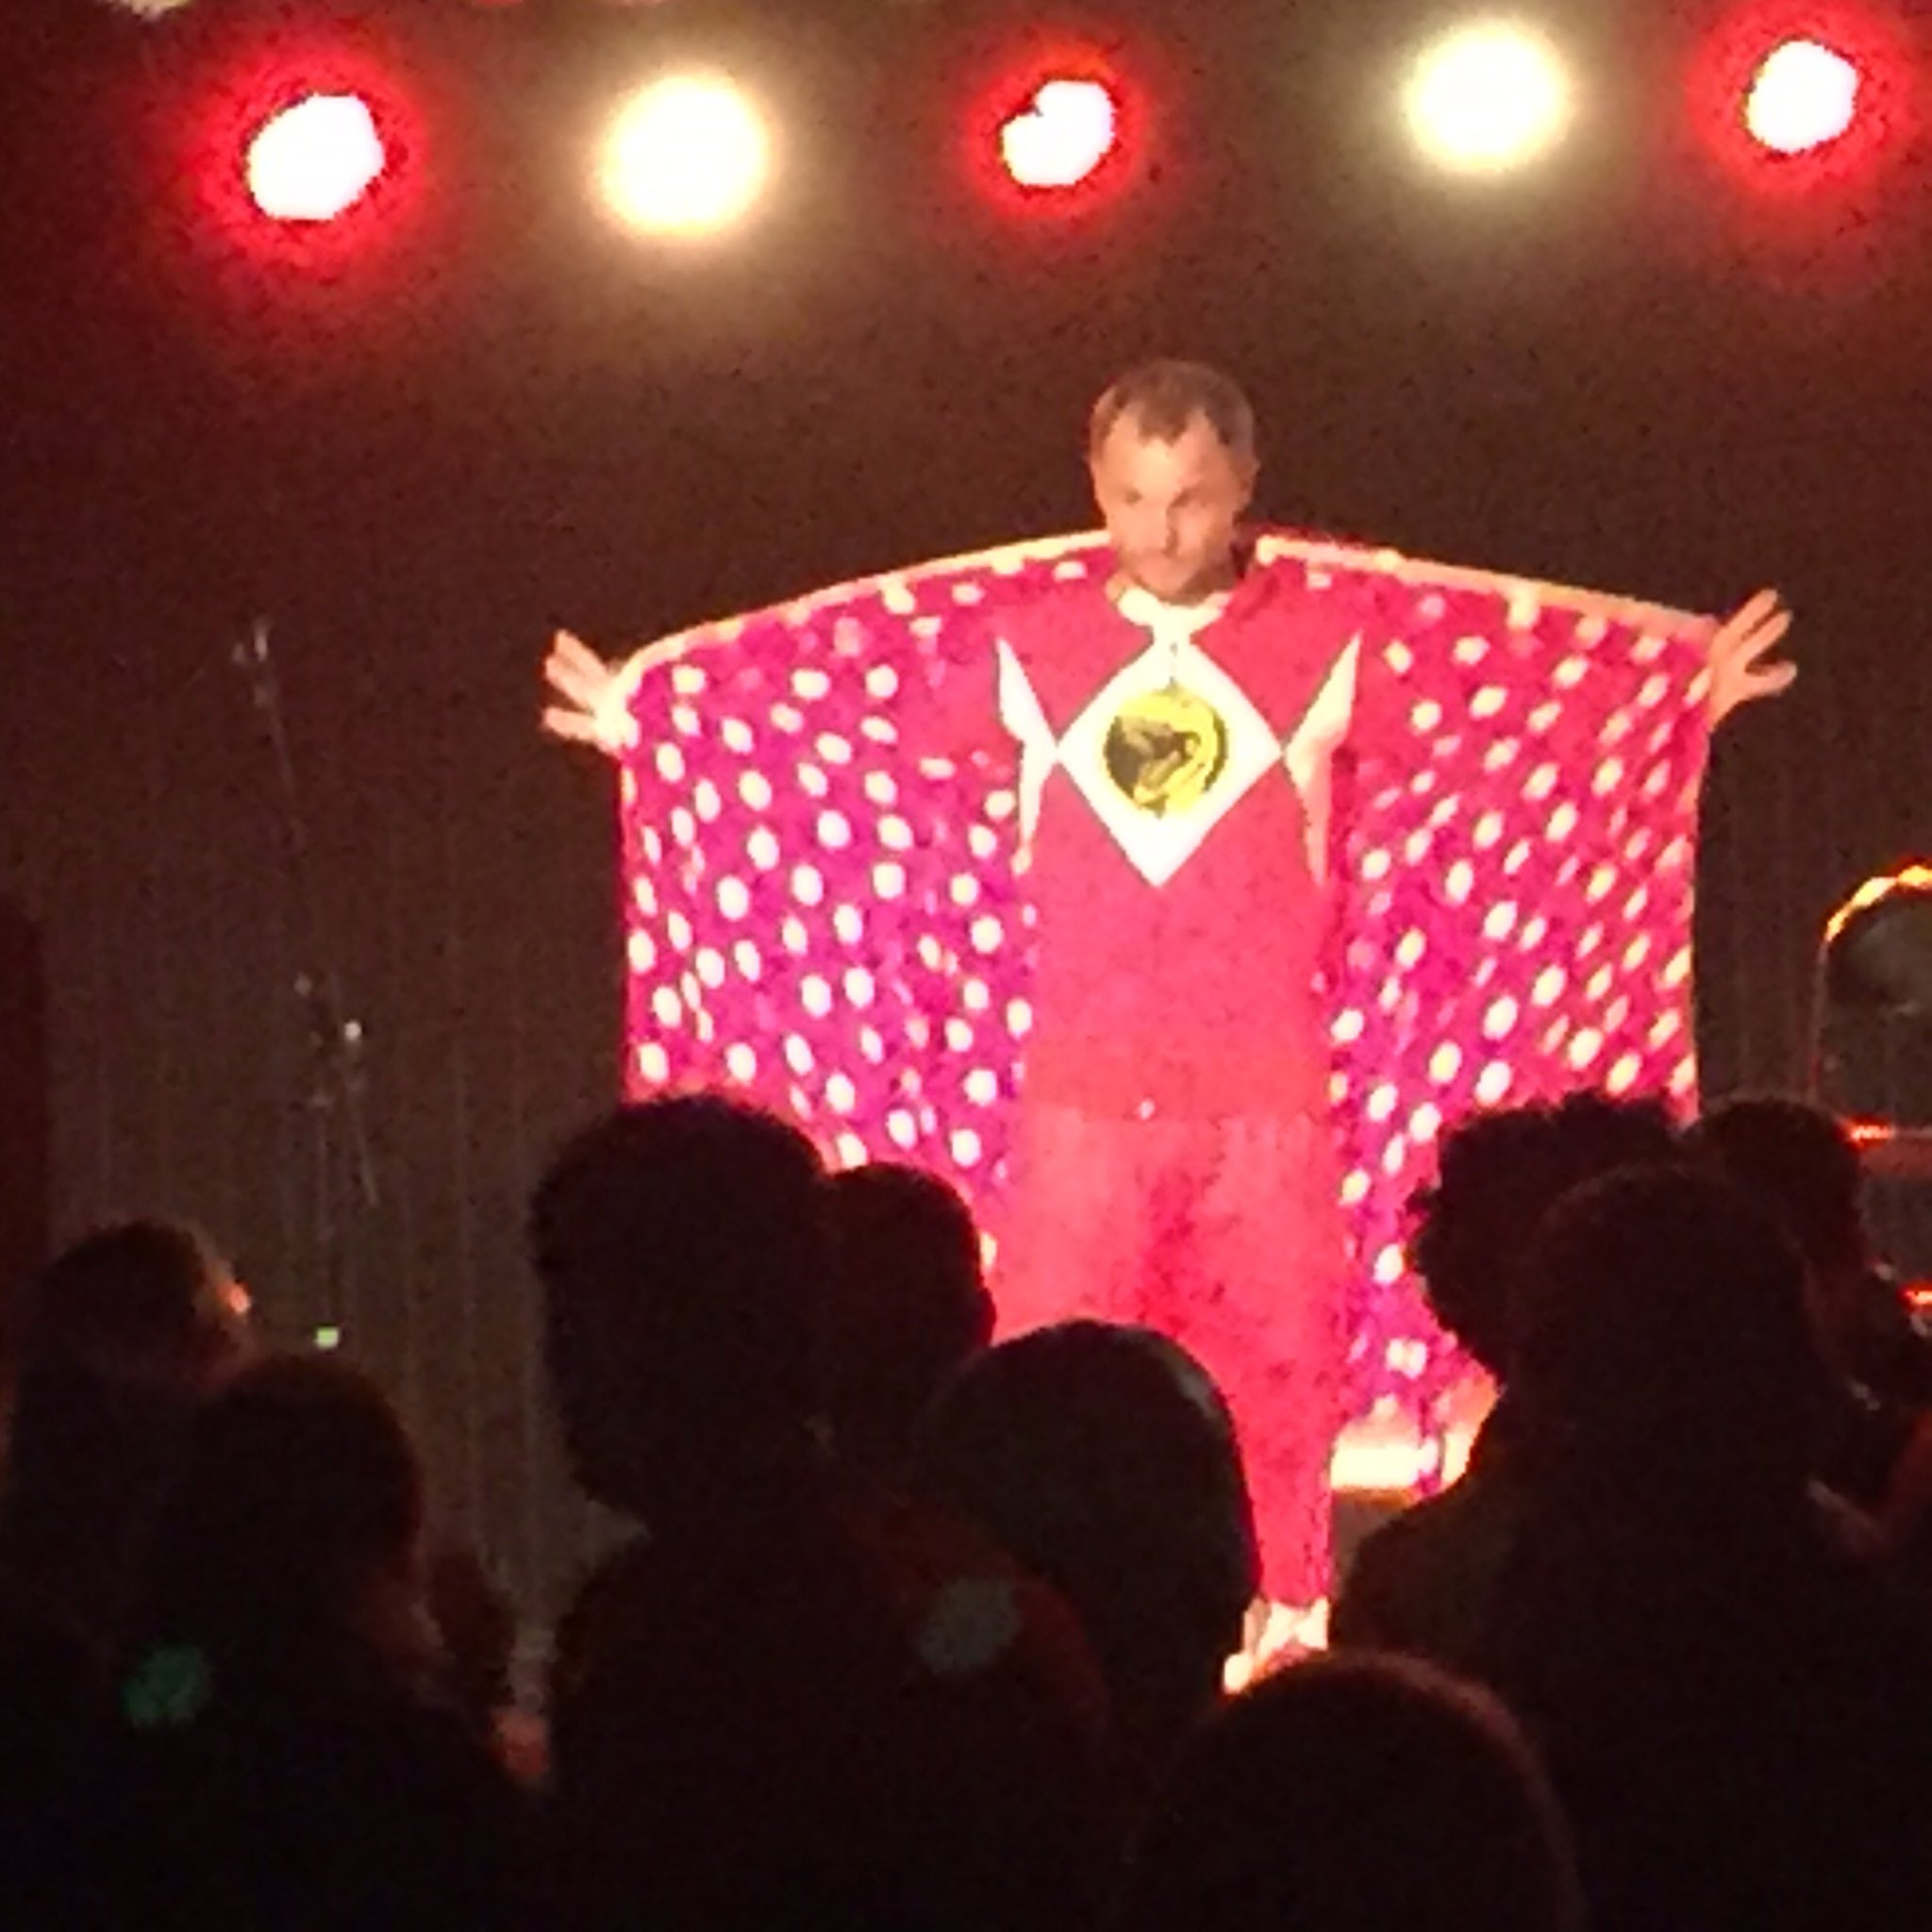 First performer: Your Mom Called. @usairguitar @TheBottleneck https://t.co/c2KZNSoBu7